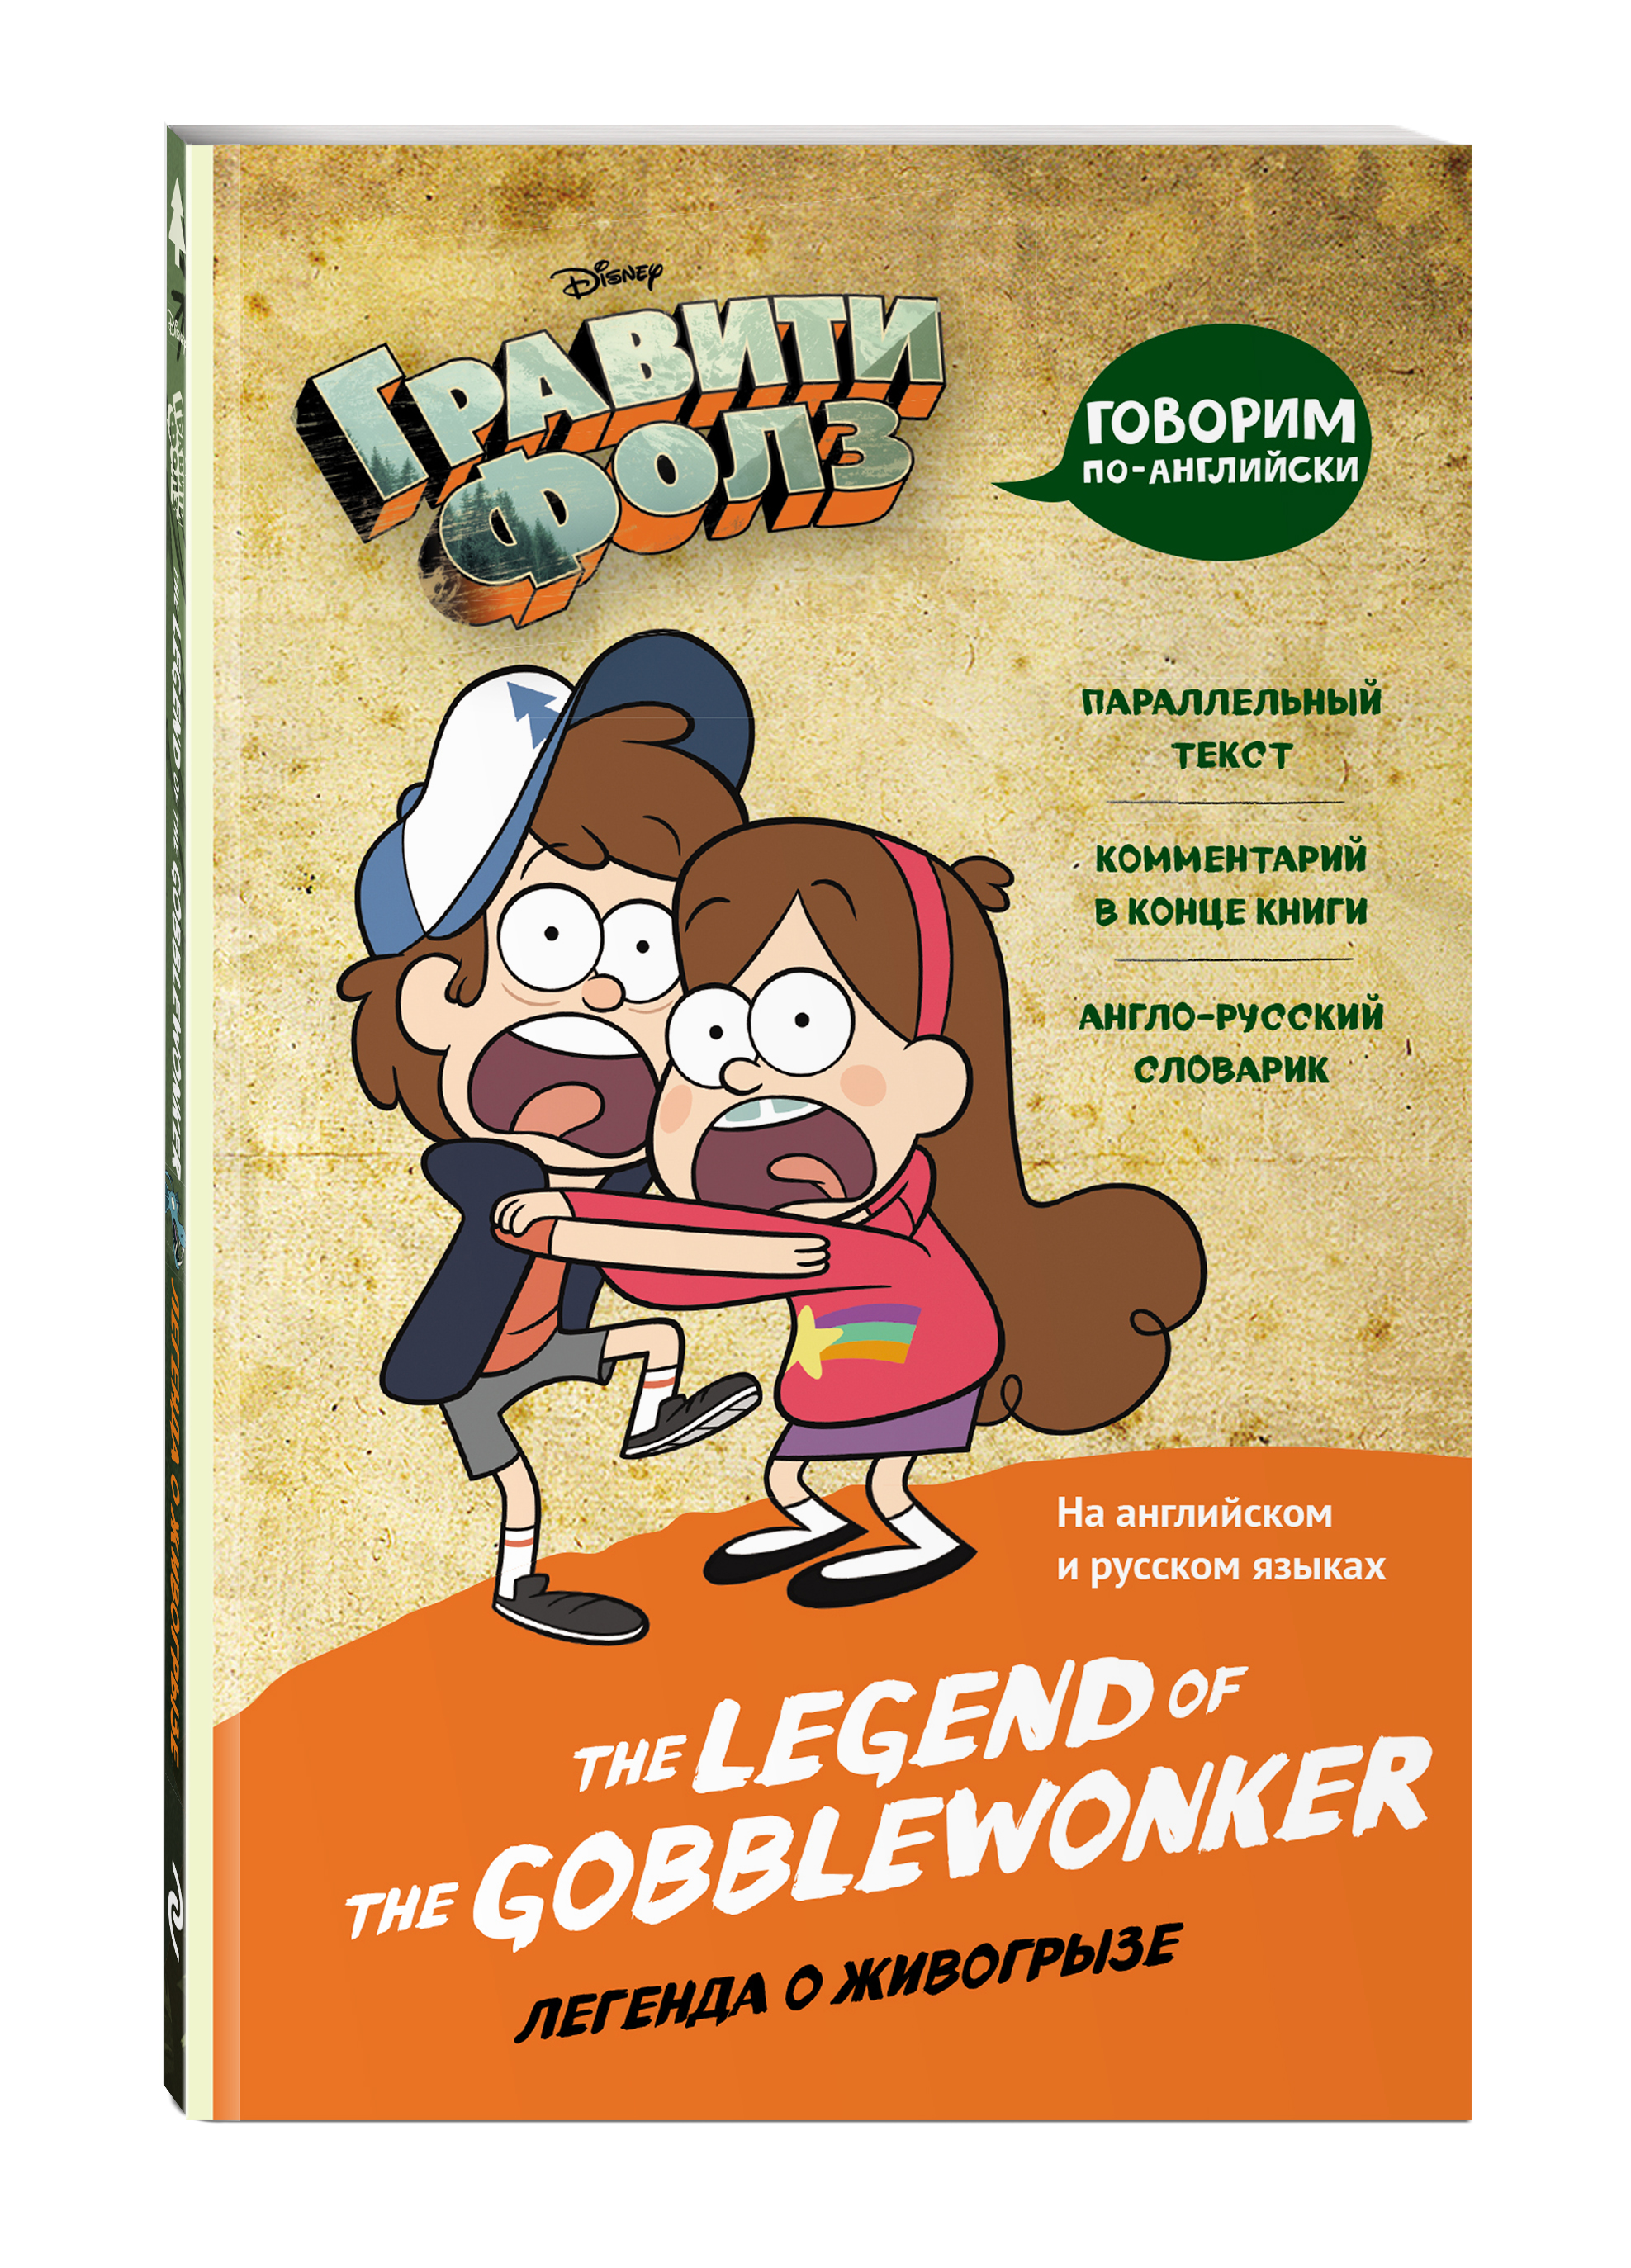 Гравити Фолз. Легенда о живогрызе = The Legend of the Gobblewonker вьюницкая е ред гравити фолз легенда о живогрызе the legend of the gobblewonker